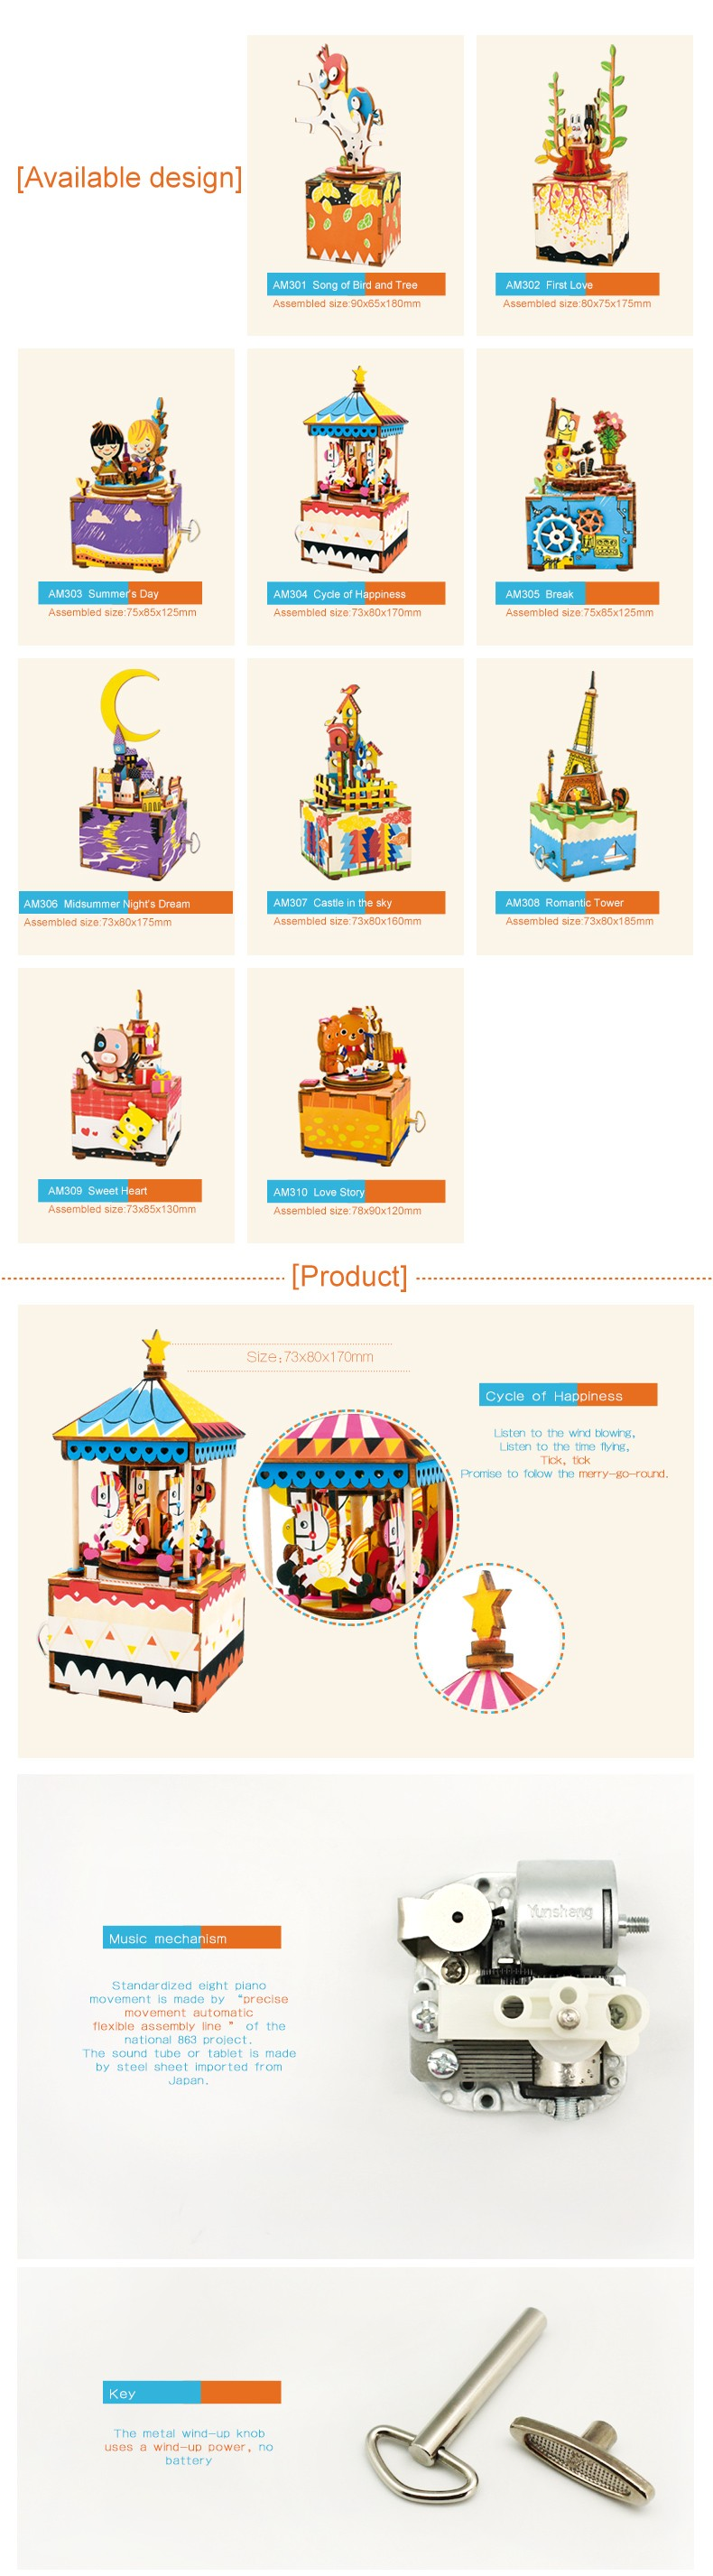 Kids Birthday Gifts Diy Crafts Wholesale Wooden Music Box Buy